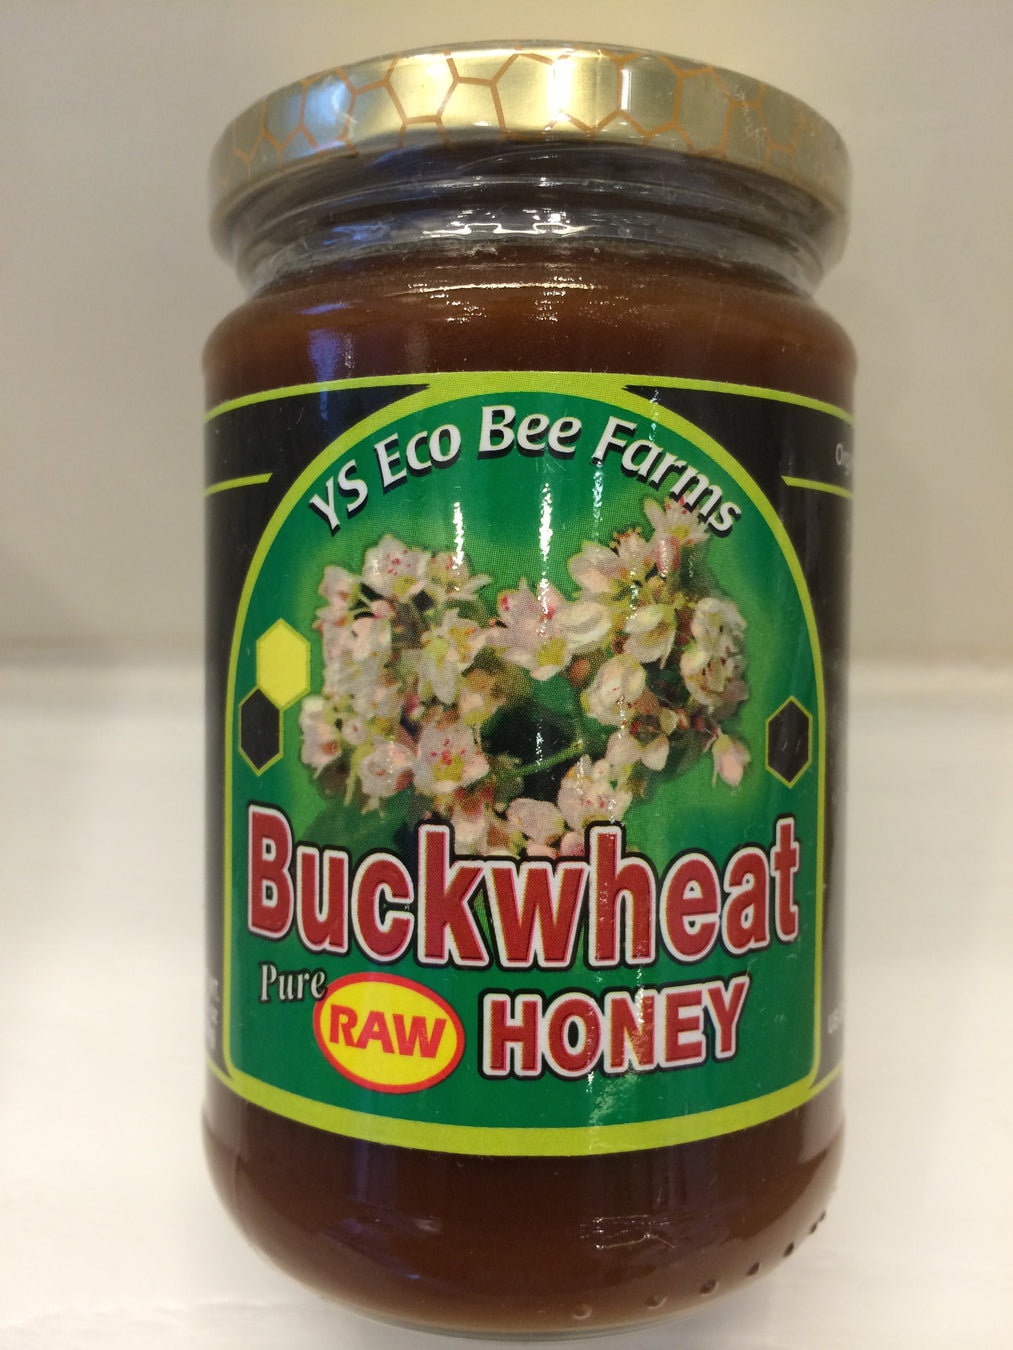 美國生蕎麥花蜂蜜 Y.S. Eco Bee Farms, Buckwheat Pure Raw Honey (13.5oz) (383g)